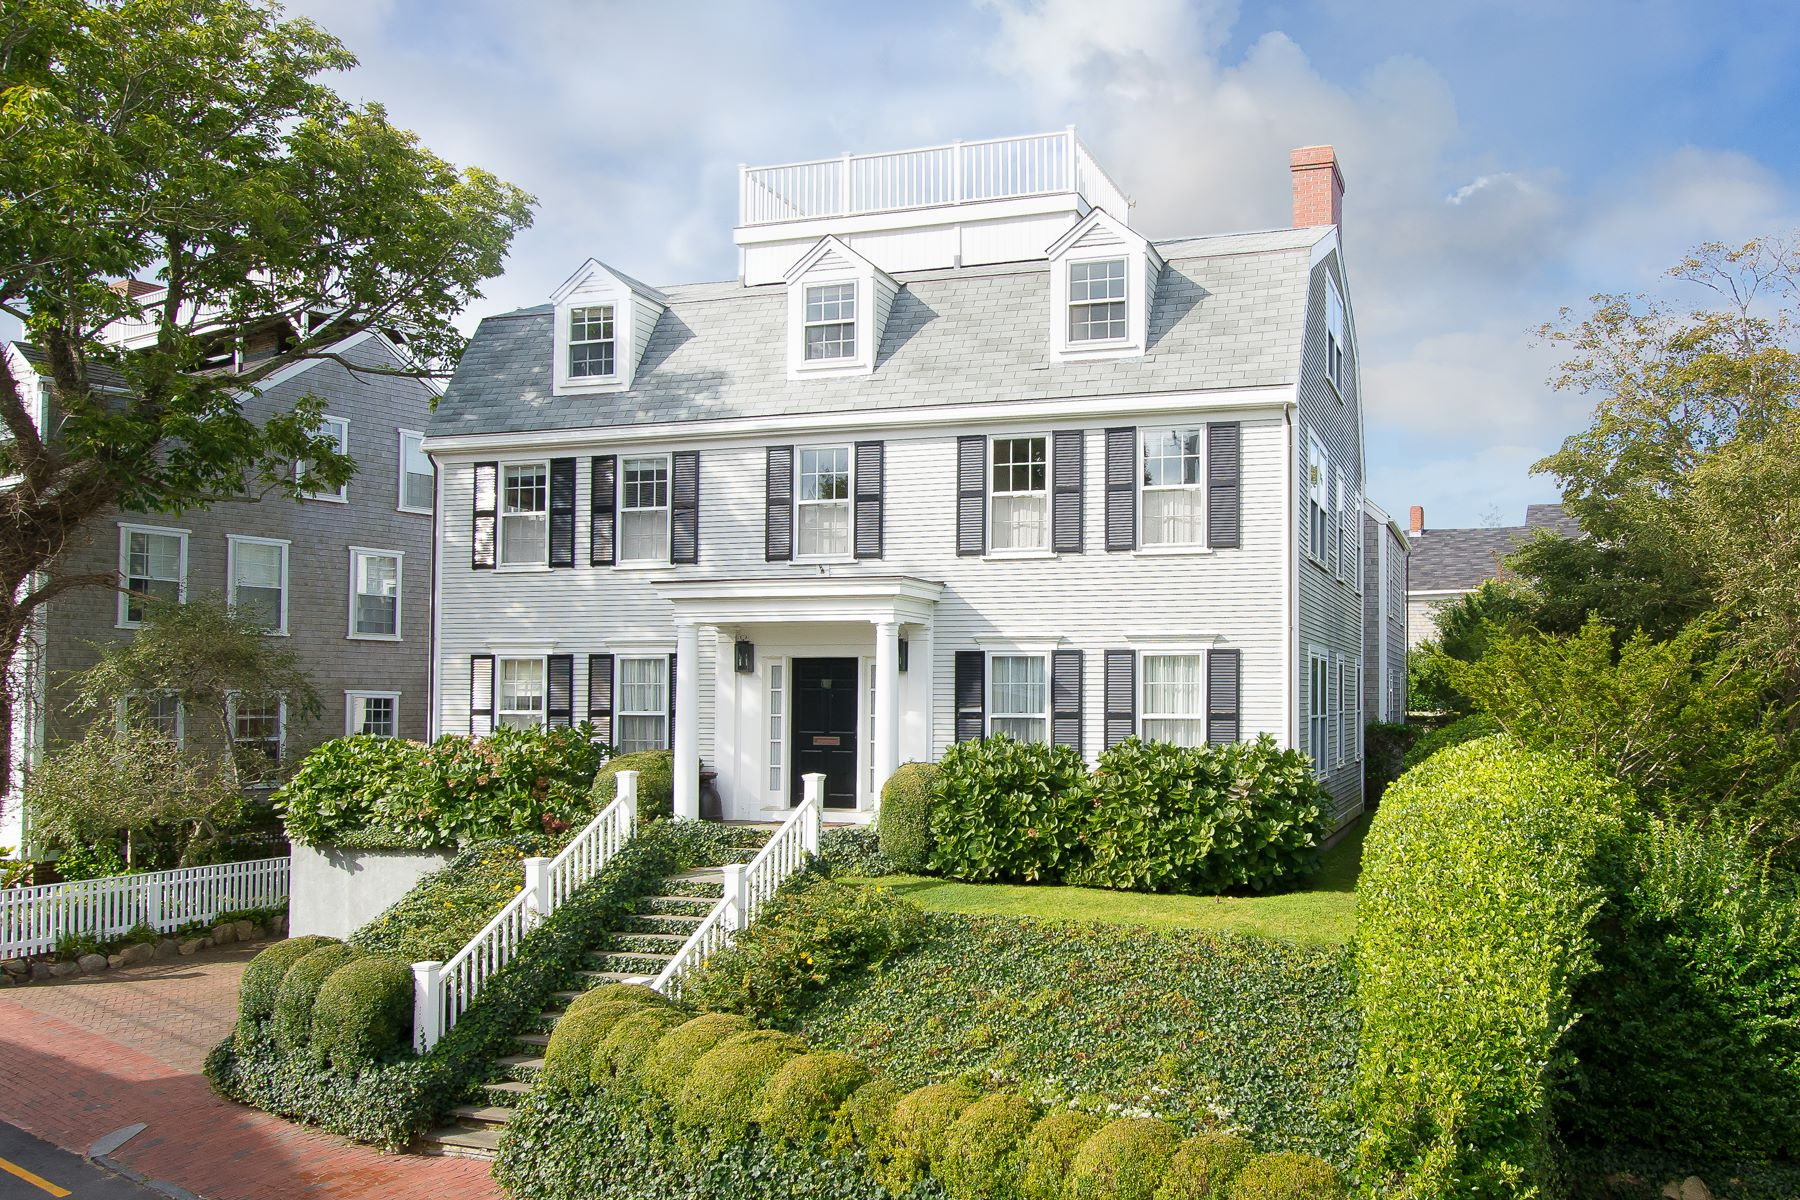 Maison unifamiliale pour l Vente à Gracious in Town Living! Nantucket, Massachusetts, 02554 États-Unis